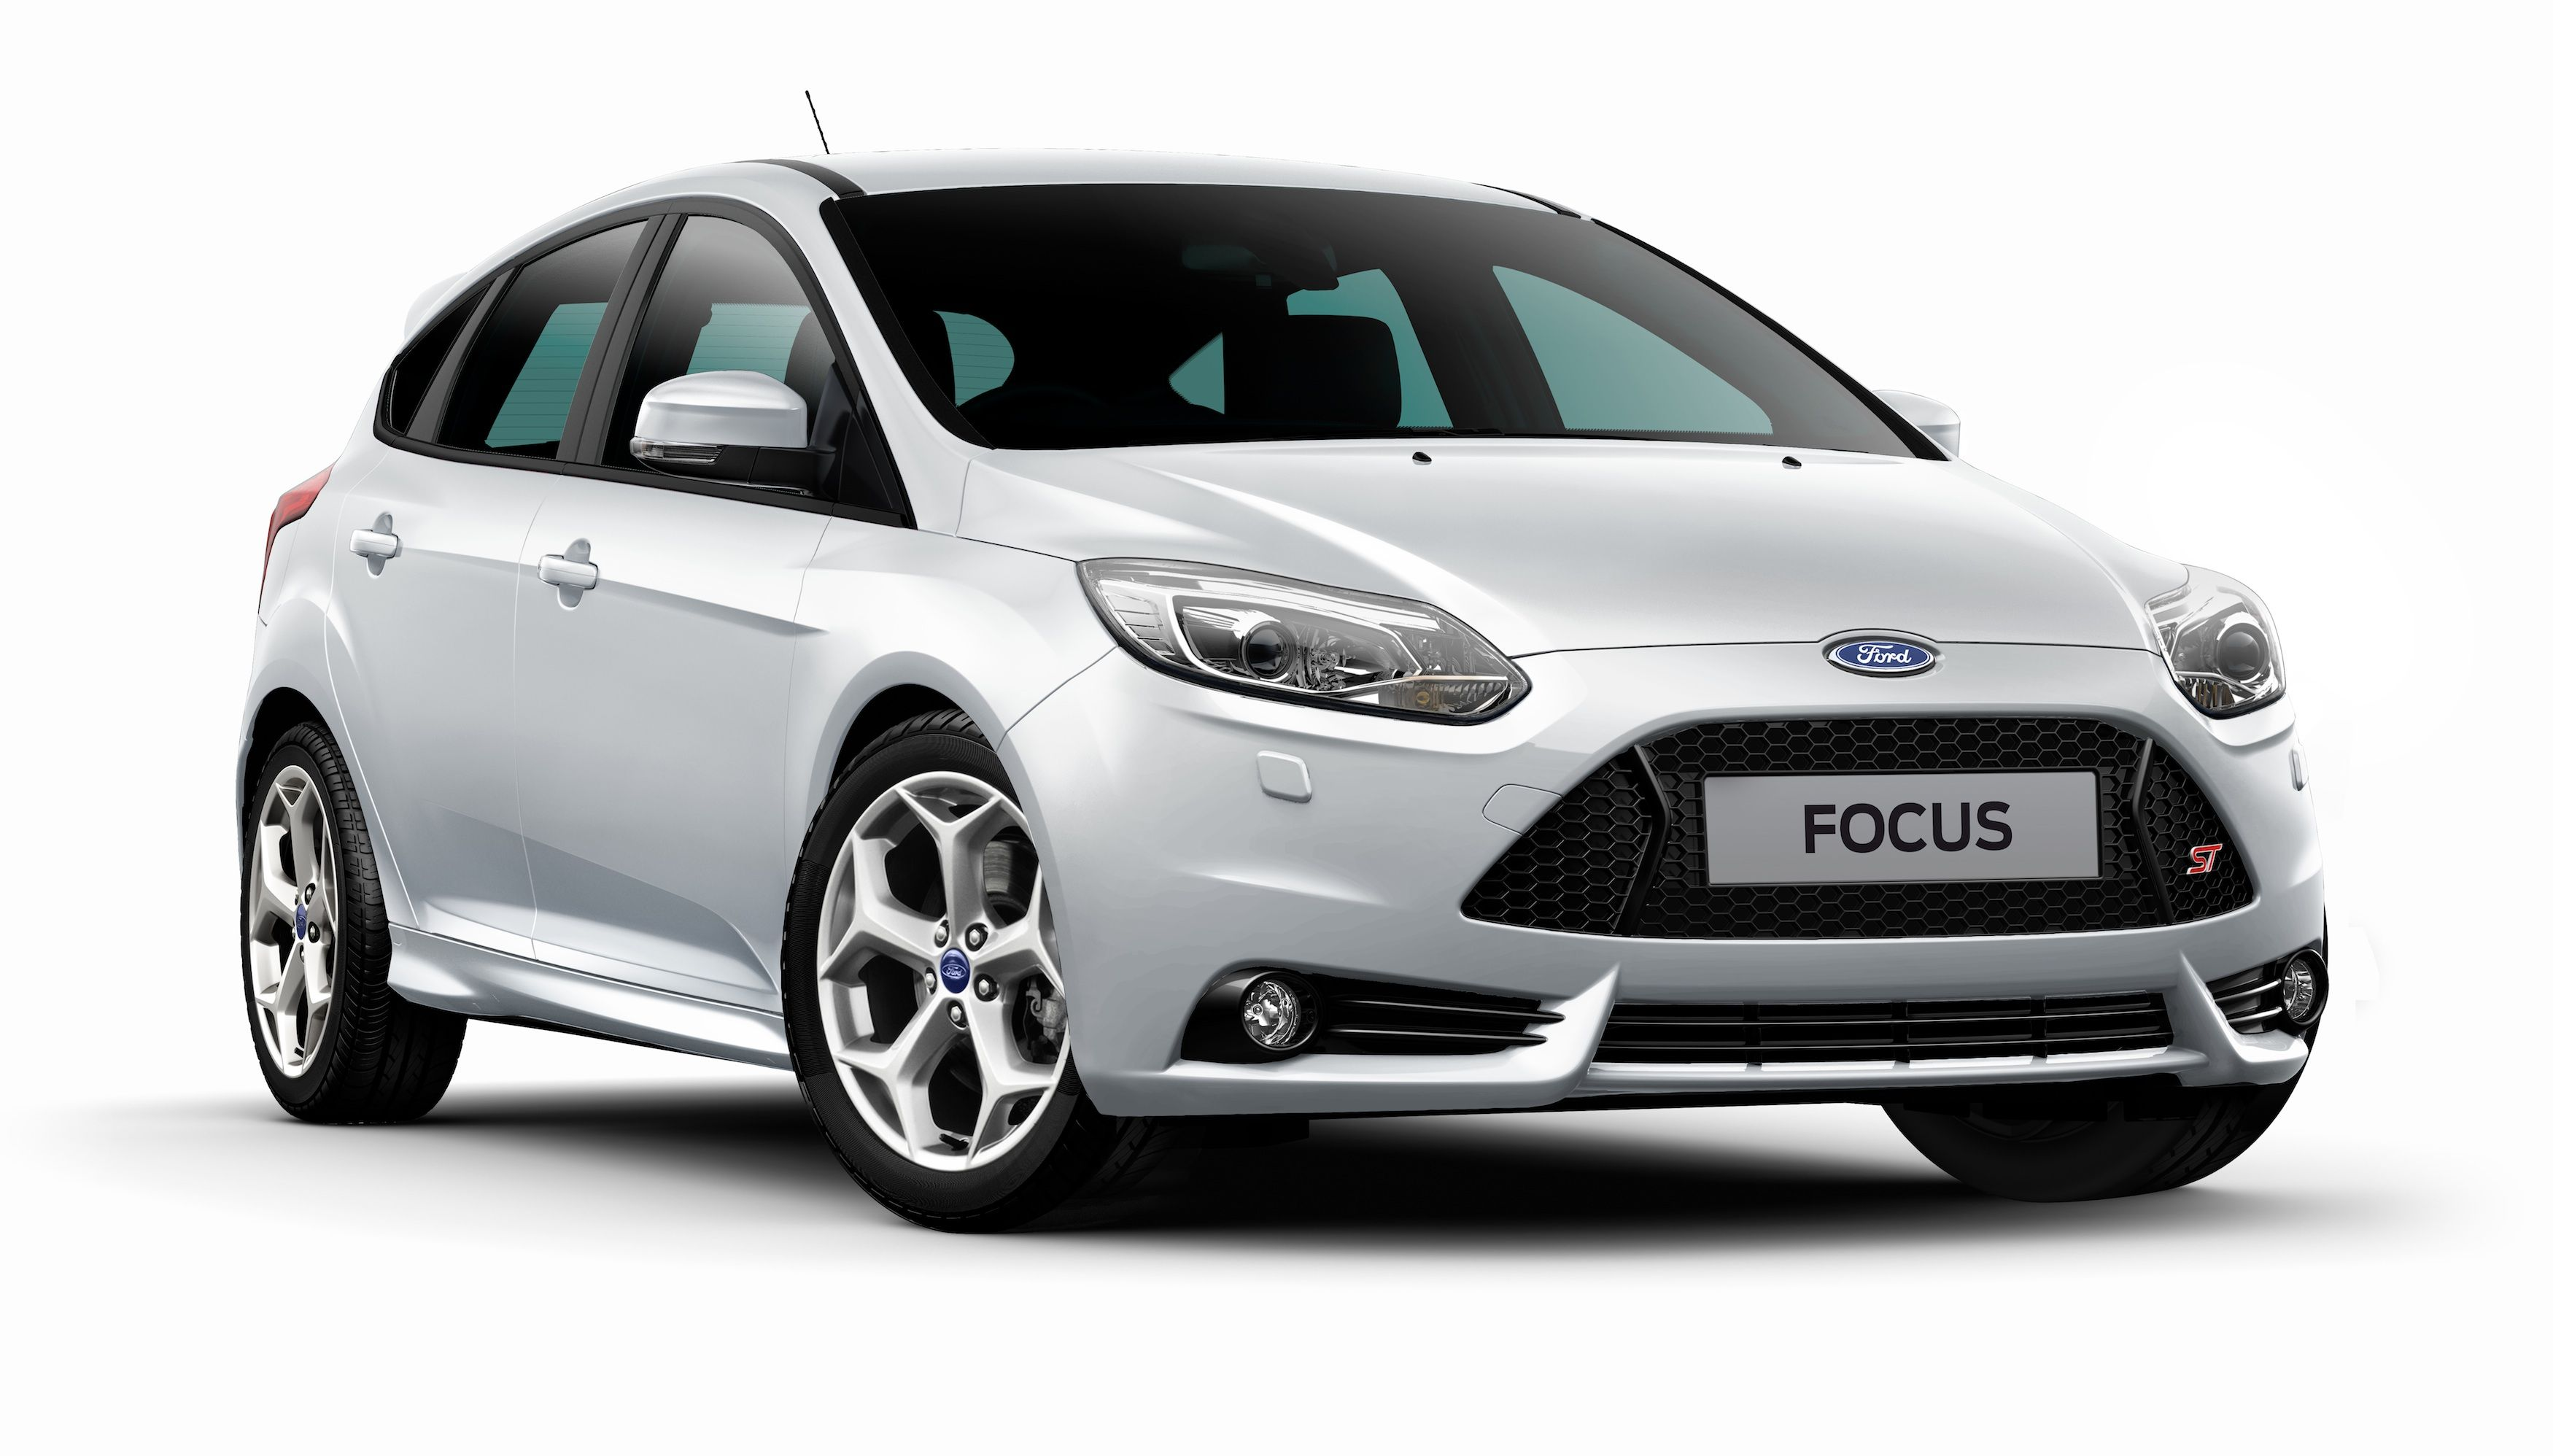 1000 images about my focus st on pinterest ken block subaru and cars - Ford Focus 2014 Hatchback White